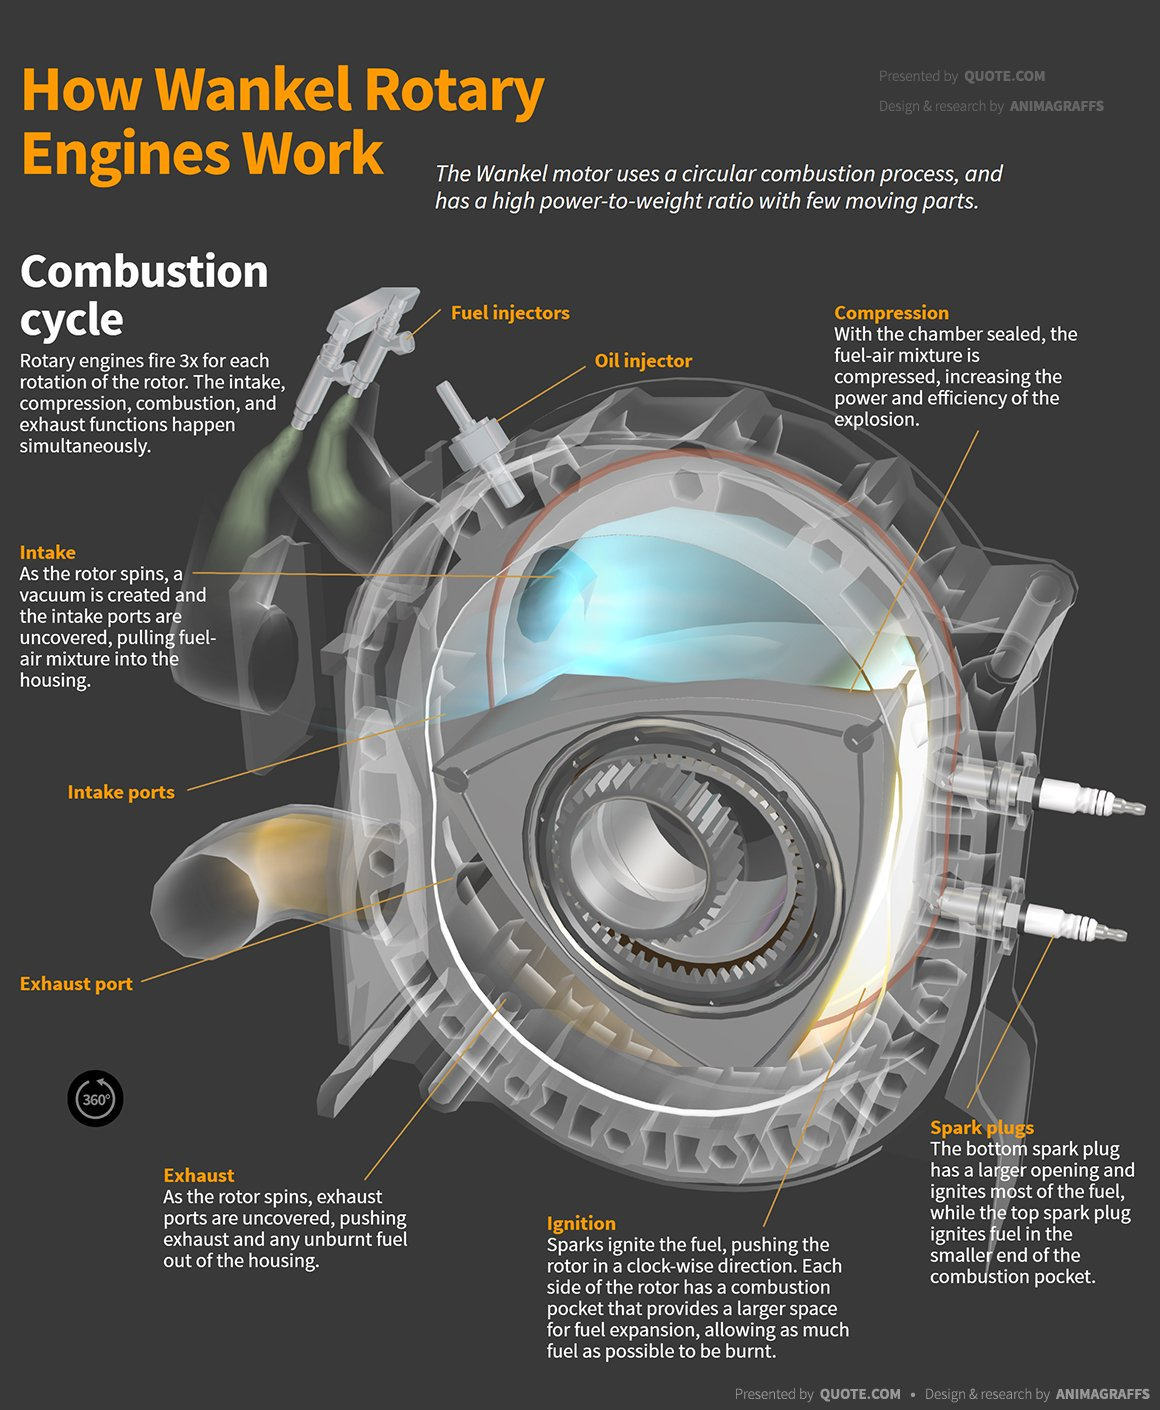 How Wankel Rotary Engines Work